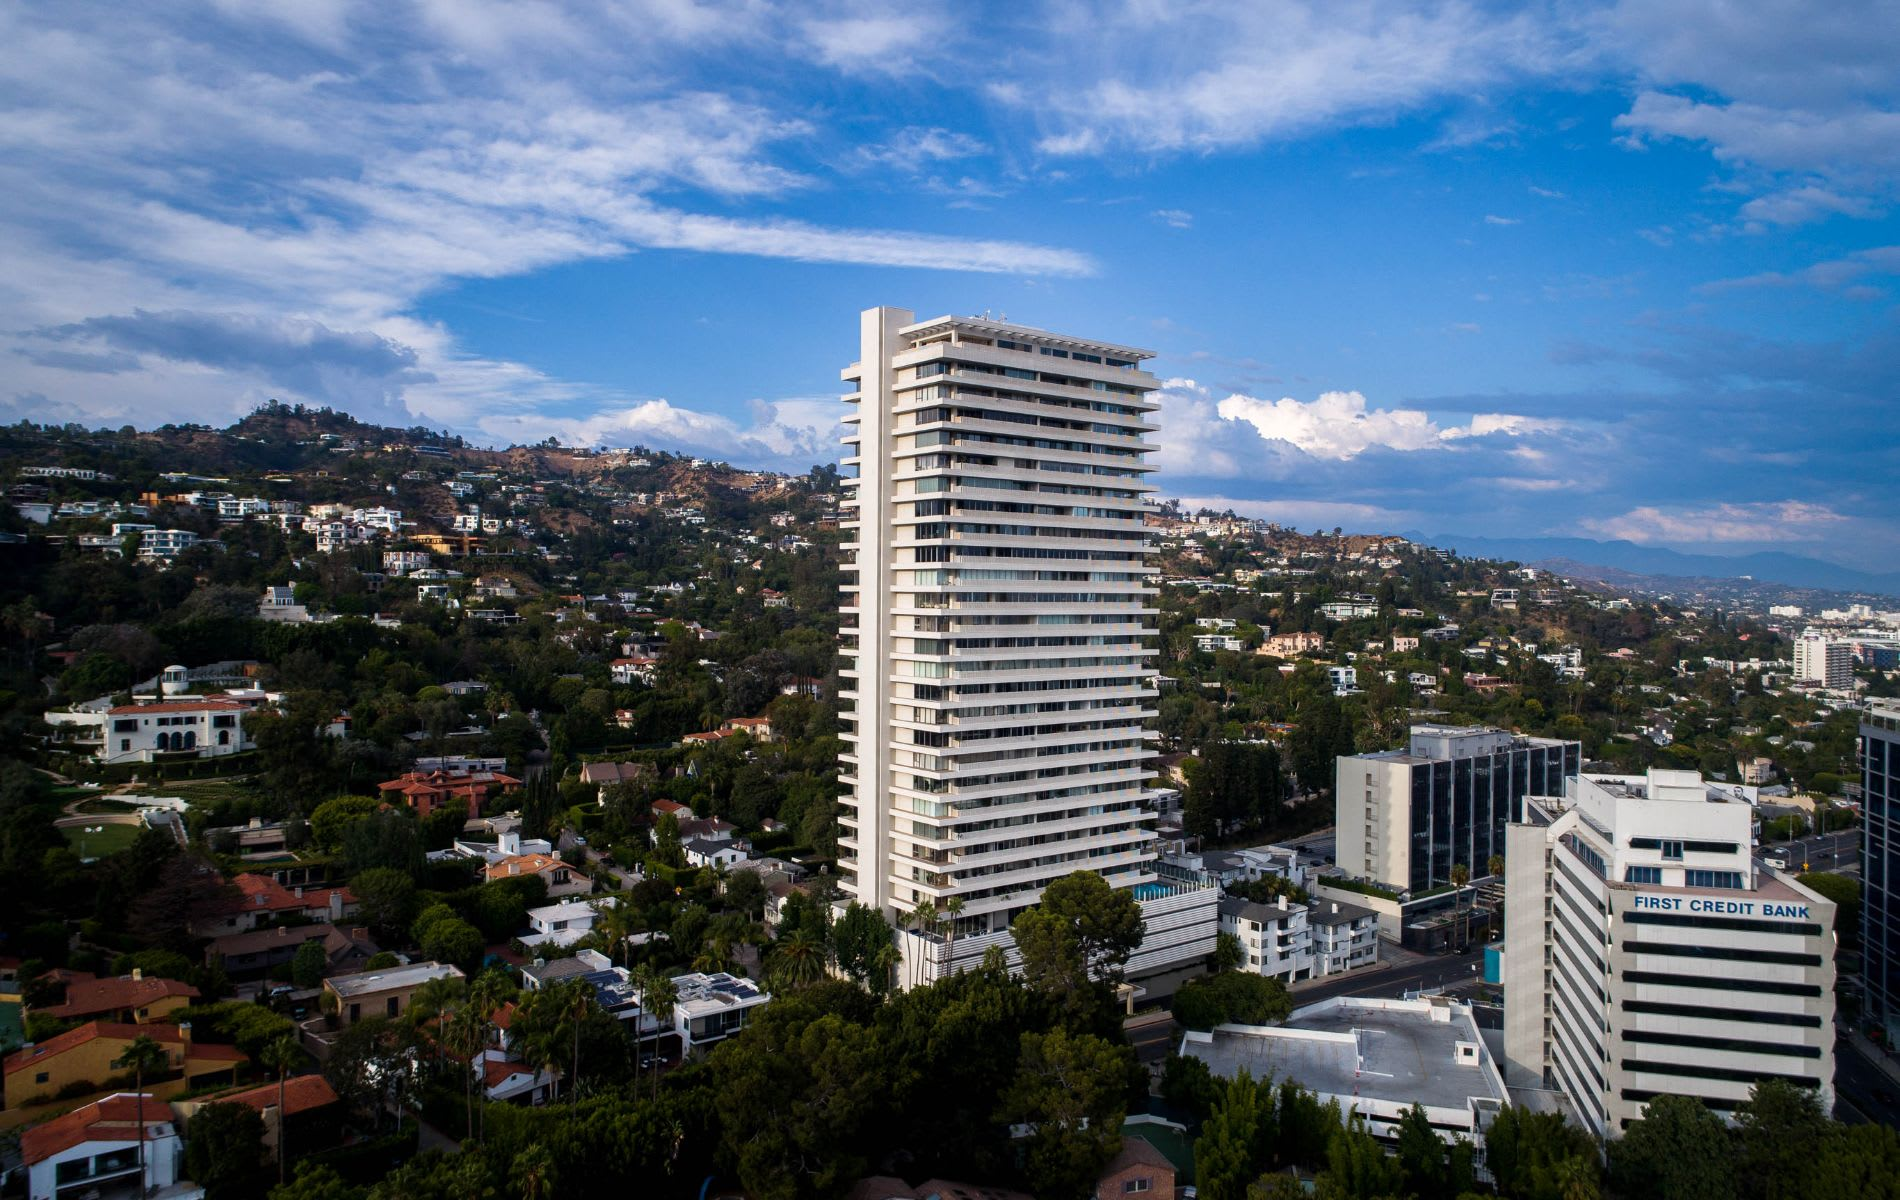 Condominium for Sale at 9255 Doheny Rd #1702+1704+1706 9255 Doheny Rd #1702+1704+1706 West Hollywood, California,90069 United States